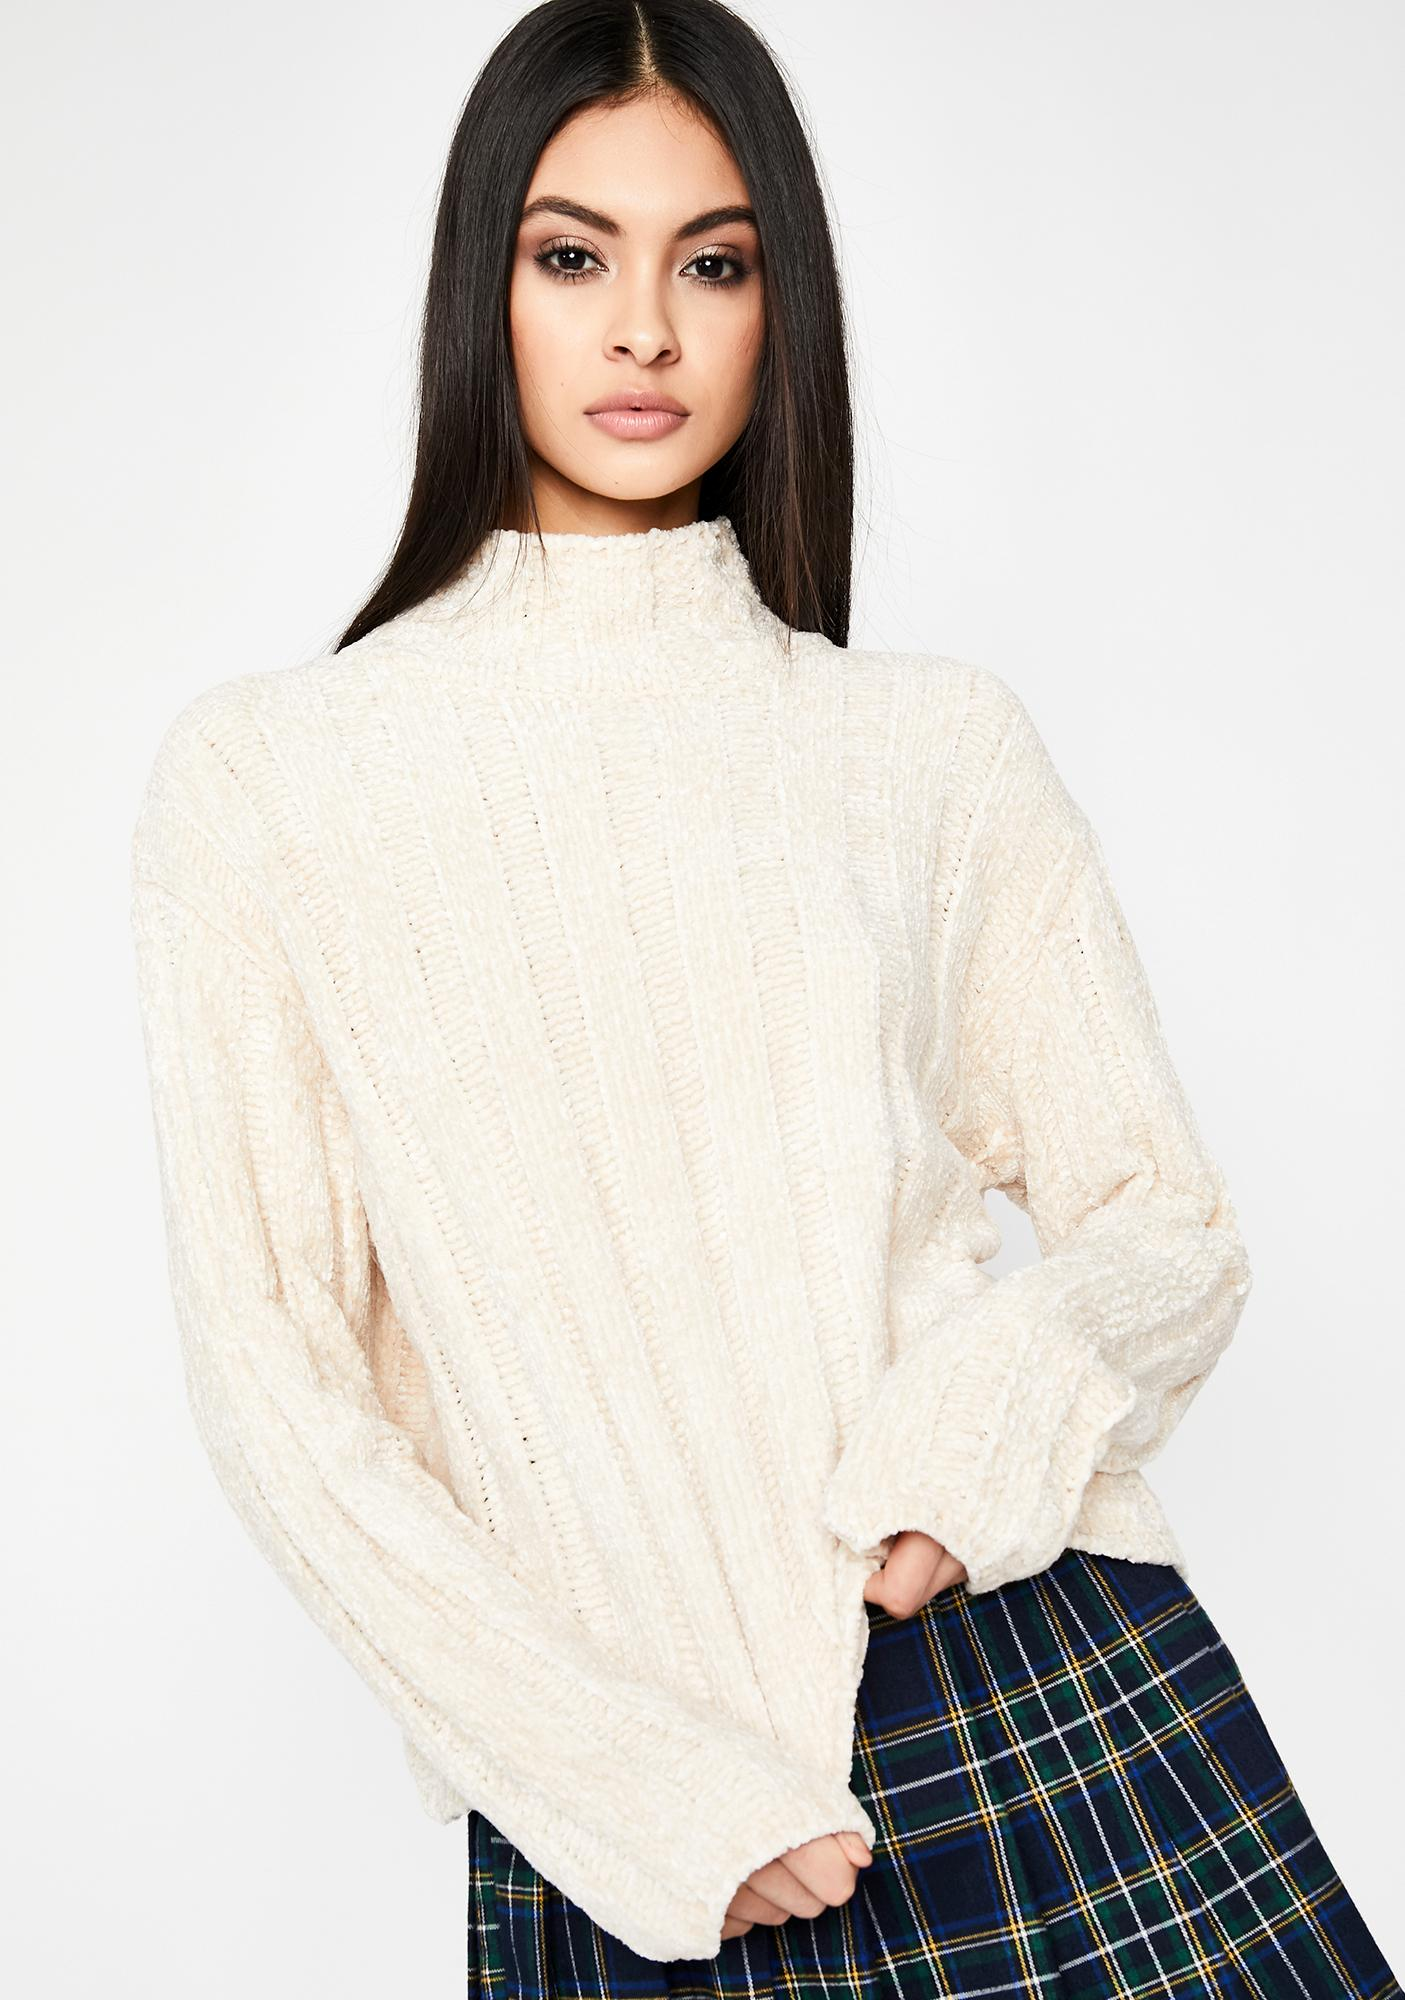 Guilty Promise Knit Sweater